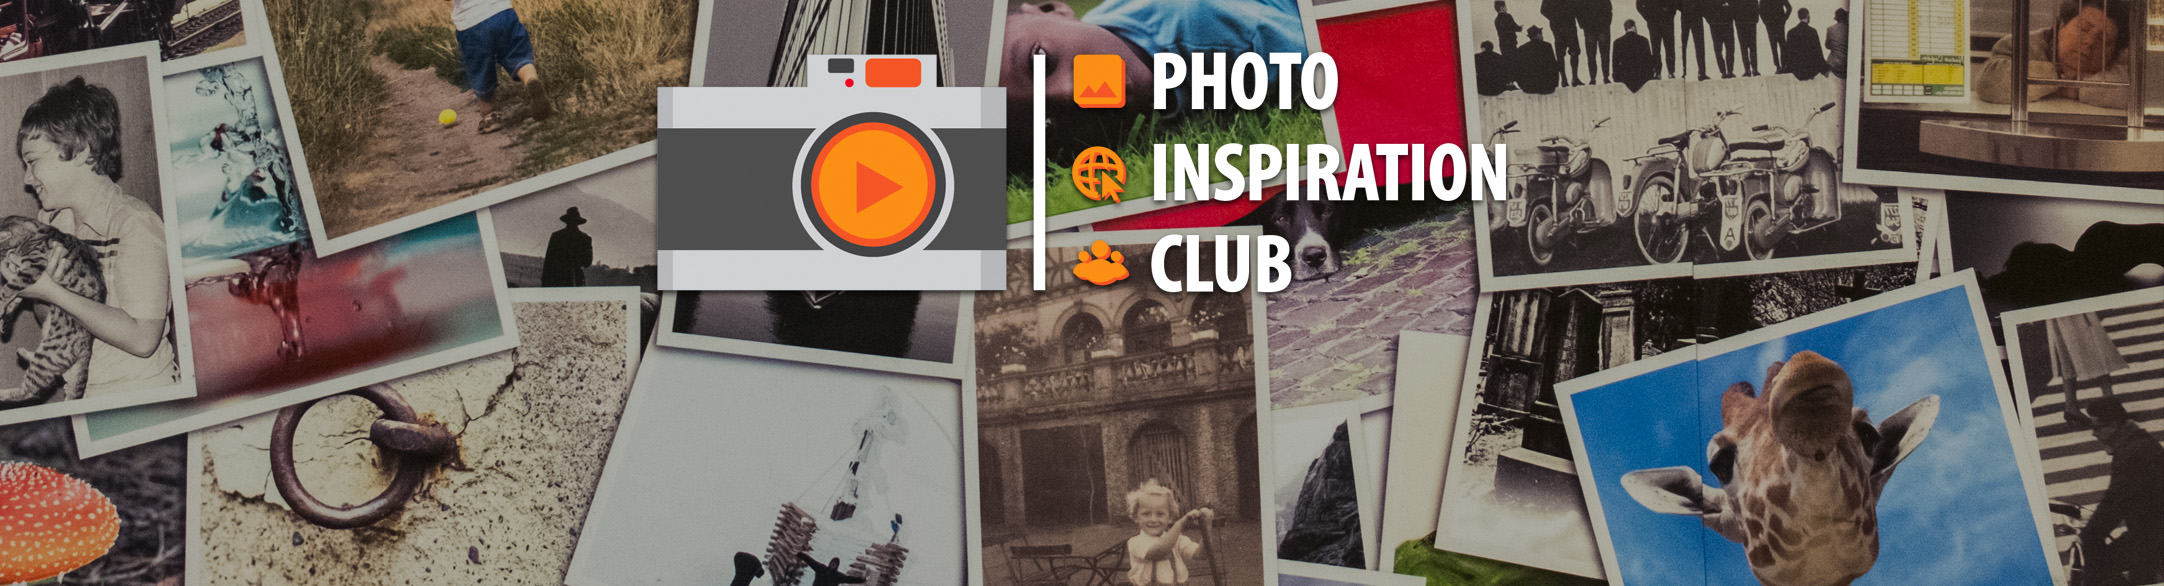 Photo Inspiration Club